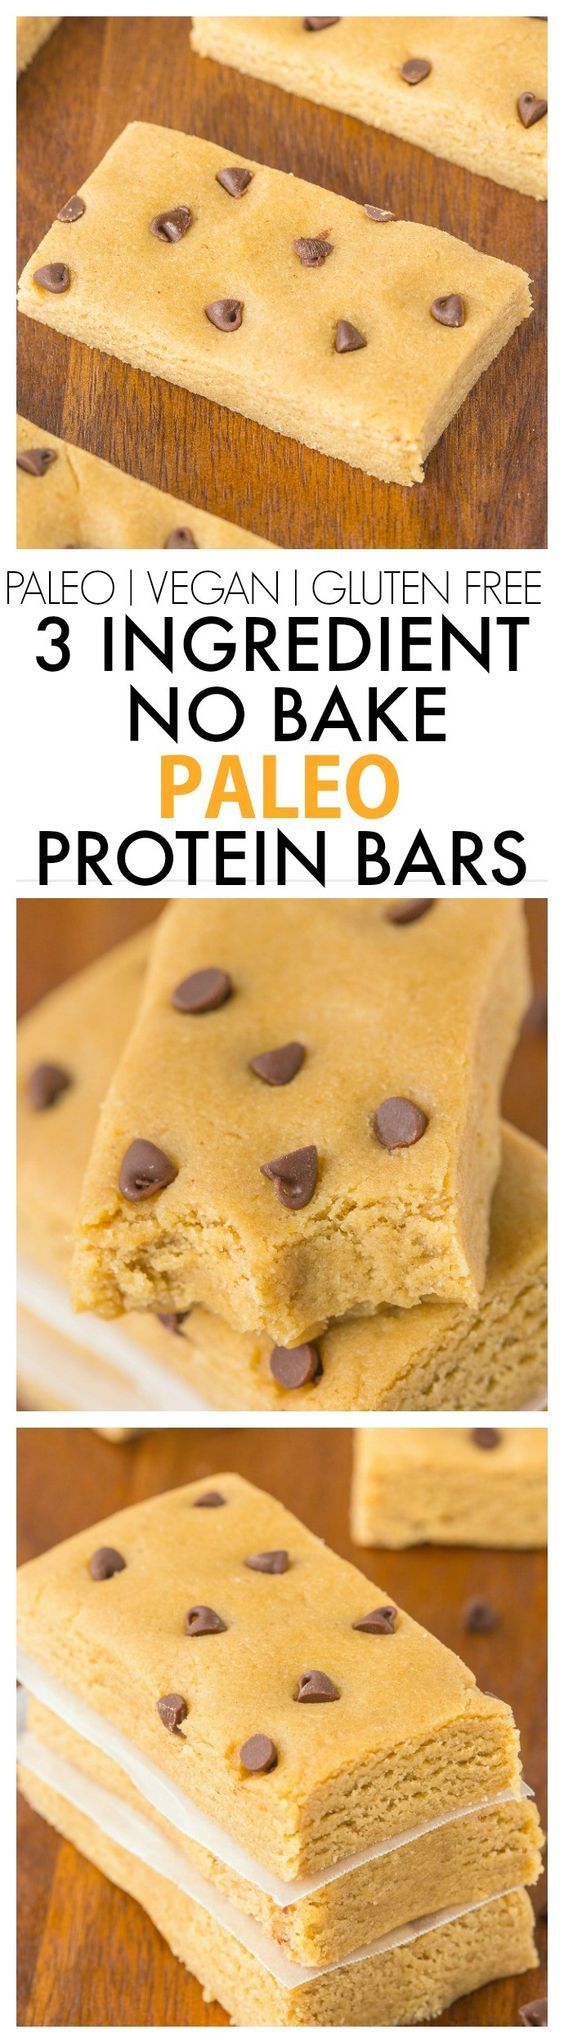 Healthy 3 Ingredient No Bake Protein Bars which take five minutes and have NO nuts, sweeteners or sugar! {vegan, gluten free, paleo recipe}- thebigmansworld.com: